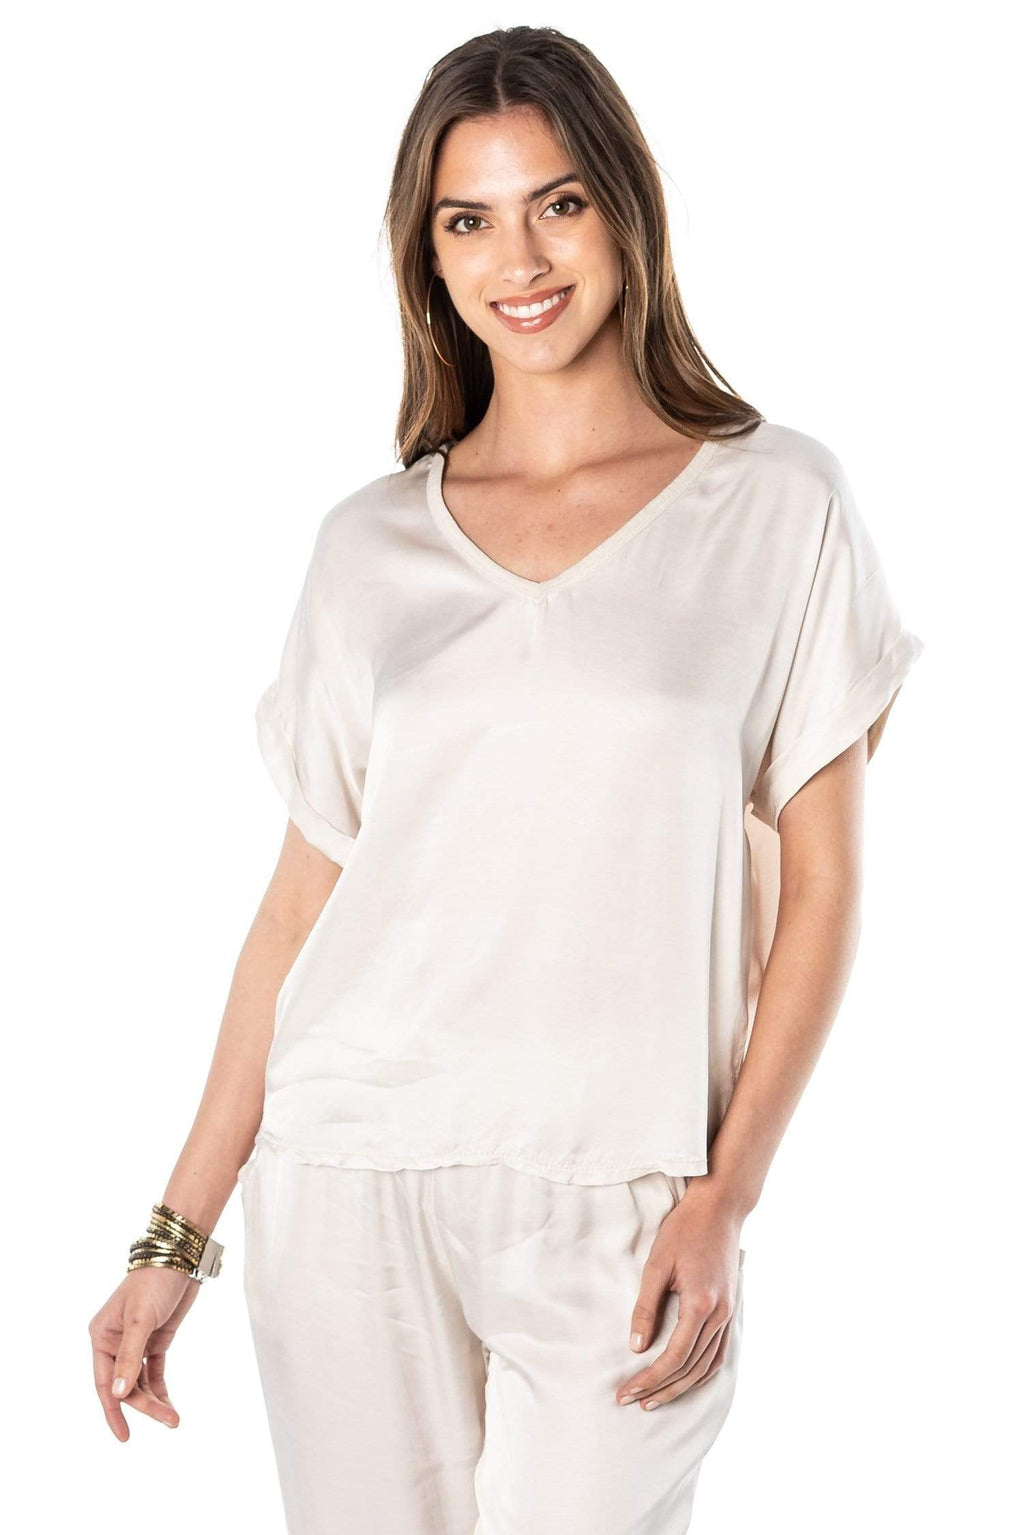 shop-sofia Steph Champagne V-Neck Top Sofia Collections Italian Silk Linen Satin